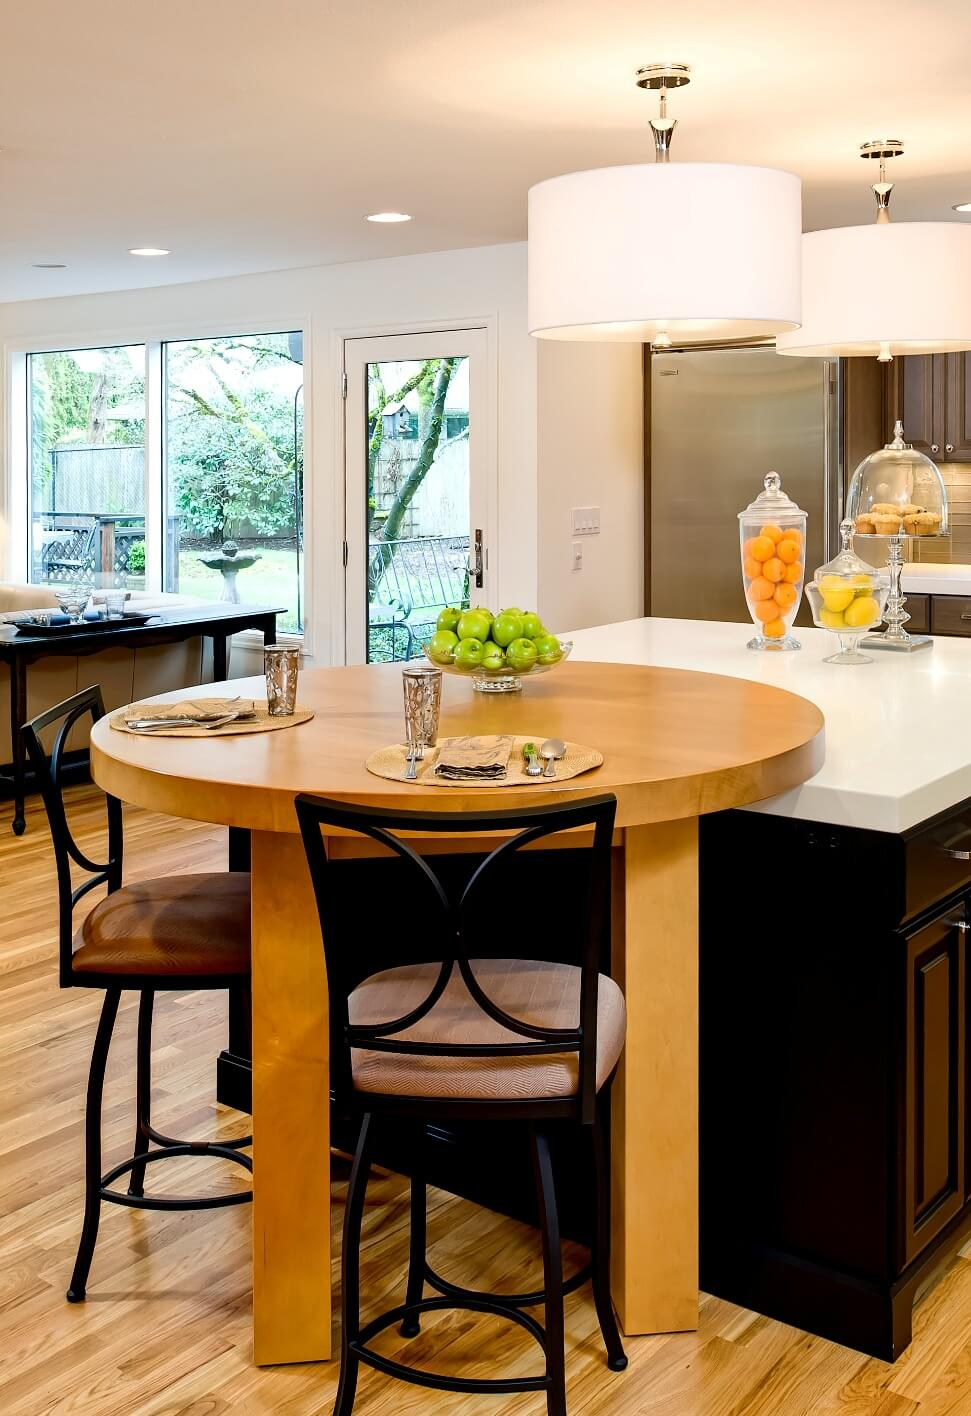 An inventive custom table in the remodeled kitchen can rest on the counter or stand freely.